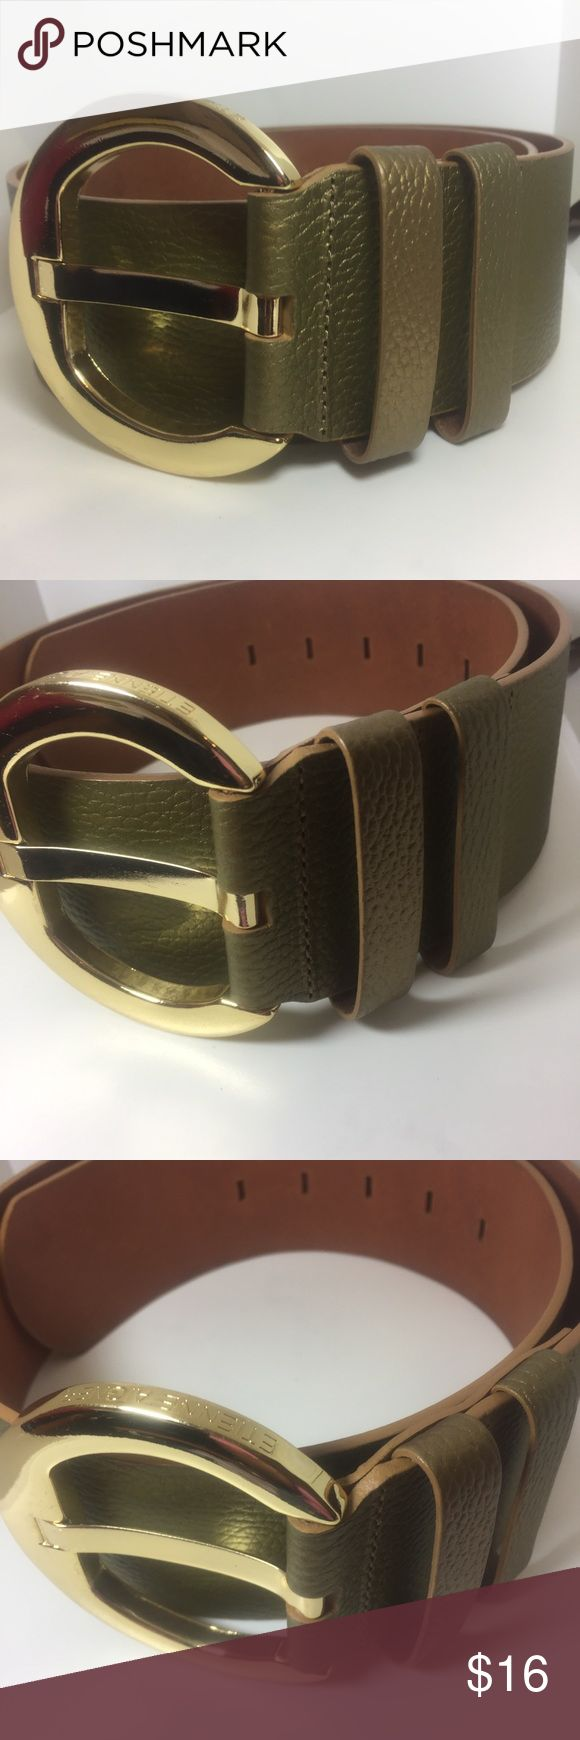 "Etienne Aigner Green Gold Leather Wide Obi Belt Etienne Aigner Green Gold Leather Wide Obi Belt  • Sz Medium  • Shiny gold buckle with the brand imprinted ( 3.5"" wide) • 31""-35"" when buckled  • 19"" total length • 2.5"" wide • The buckle has a few scratches, otherwise the belt is in very good condition. No wear to the holes, the belt looks like it has never been worn Etienne Aigner Accessories Belts"